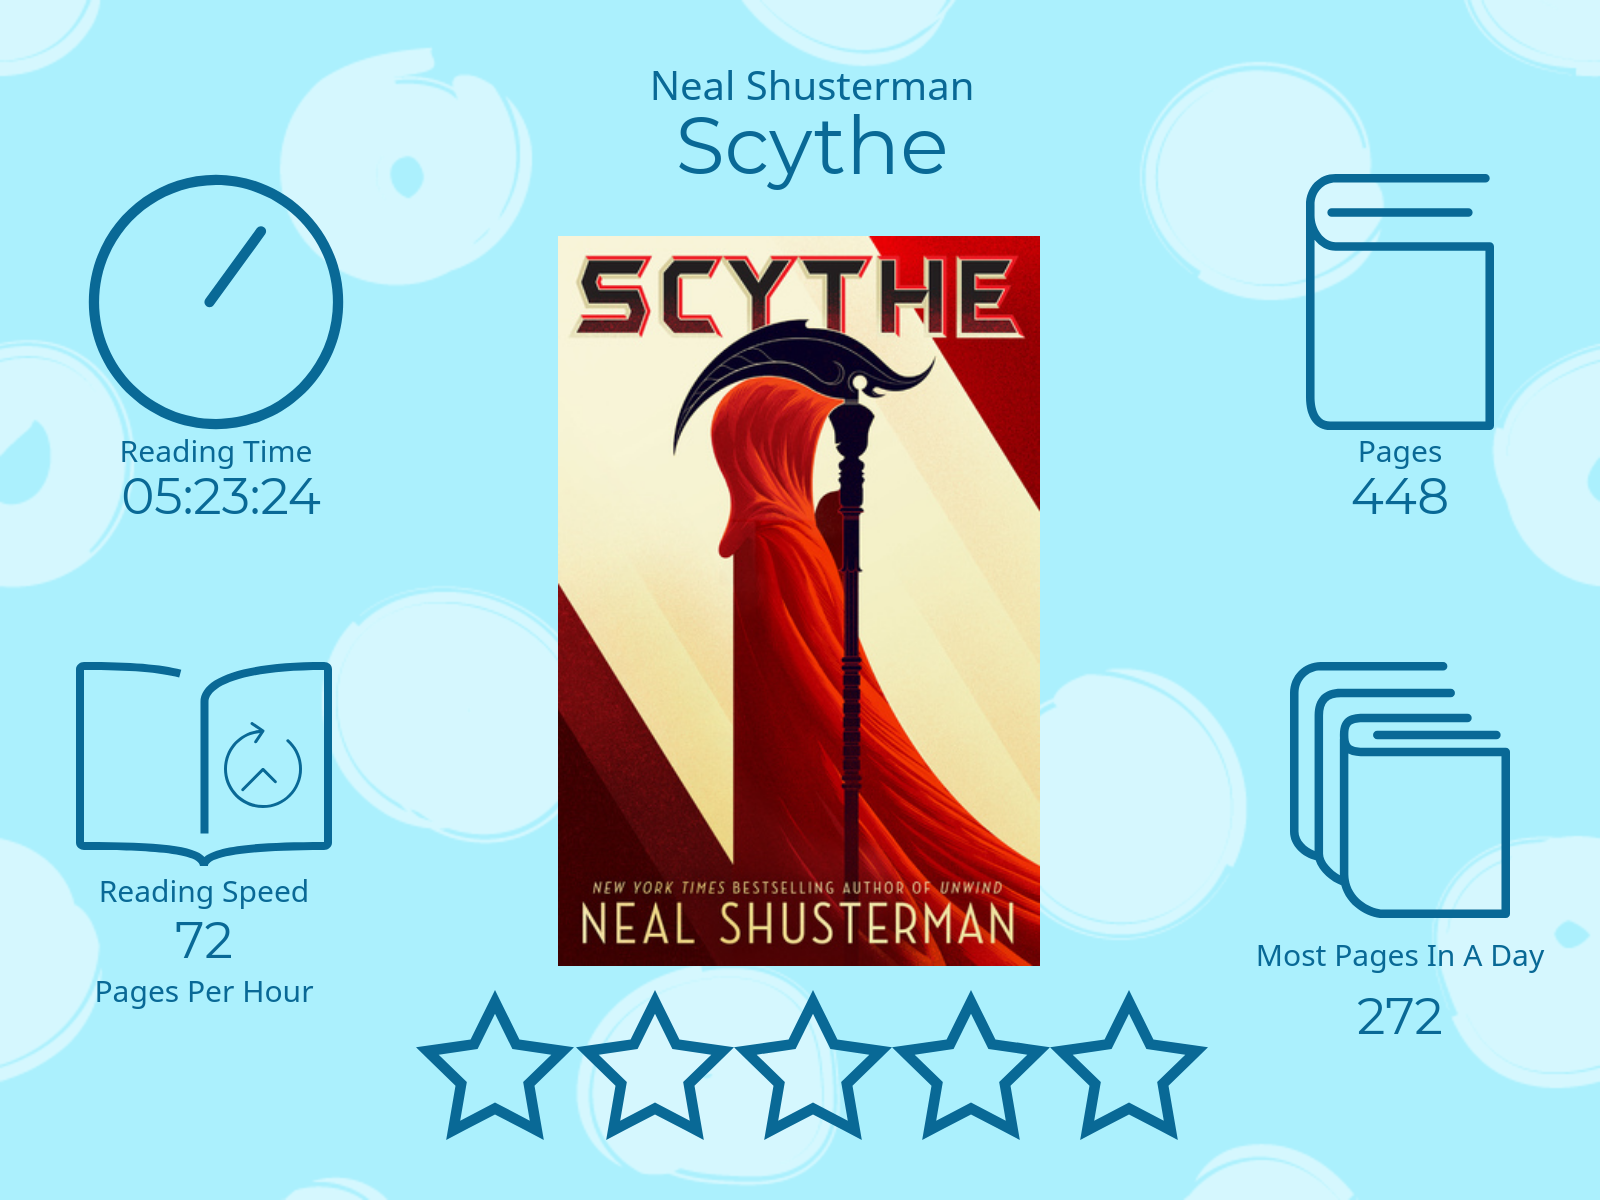 Scythe by Neal Shusterman 5 Stars 5 Hours 23 Minutes 24 Seconds reading time 448 Pages Most pages read in a day 272 72 Pages per Hour